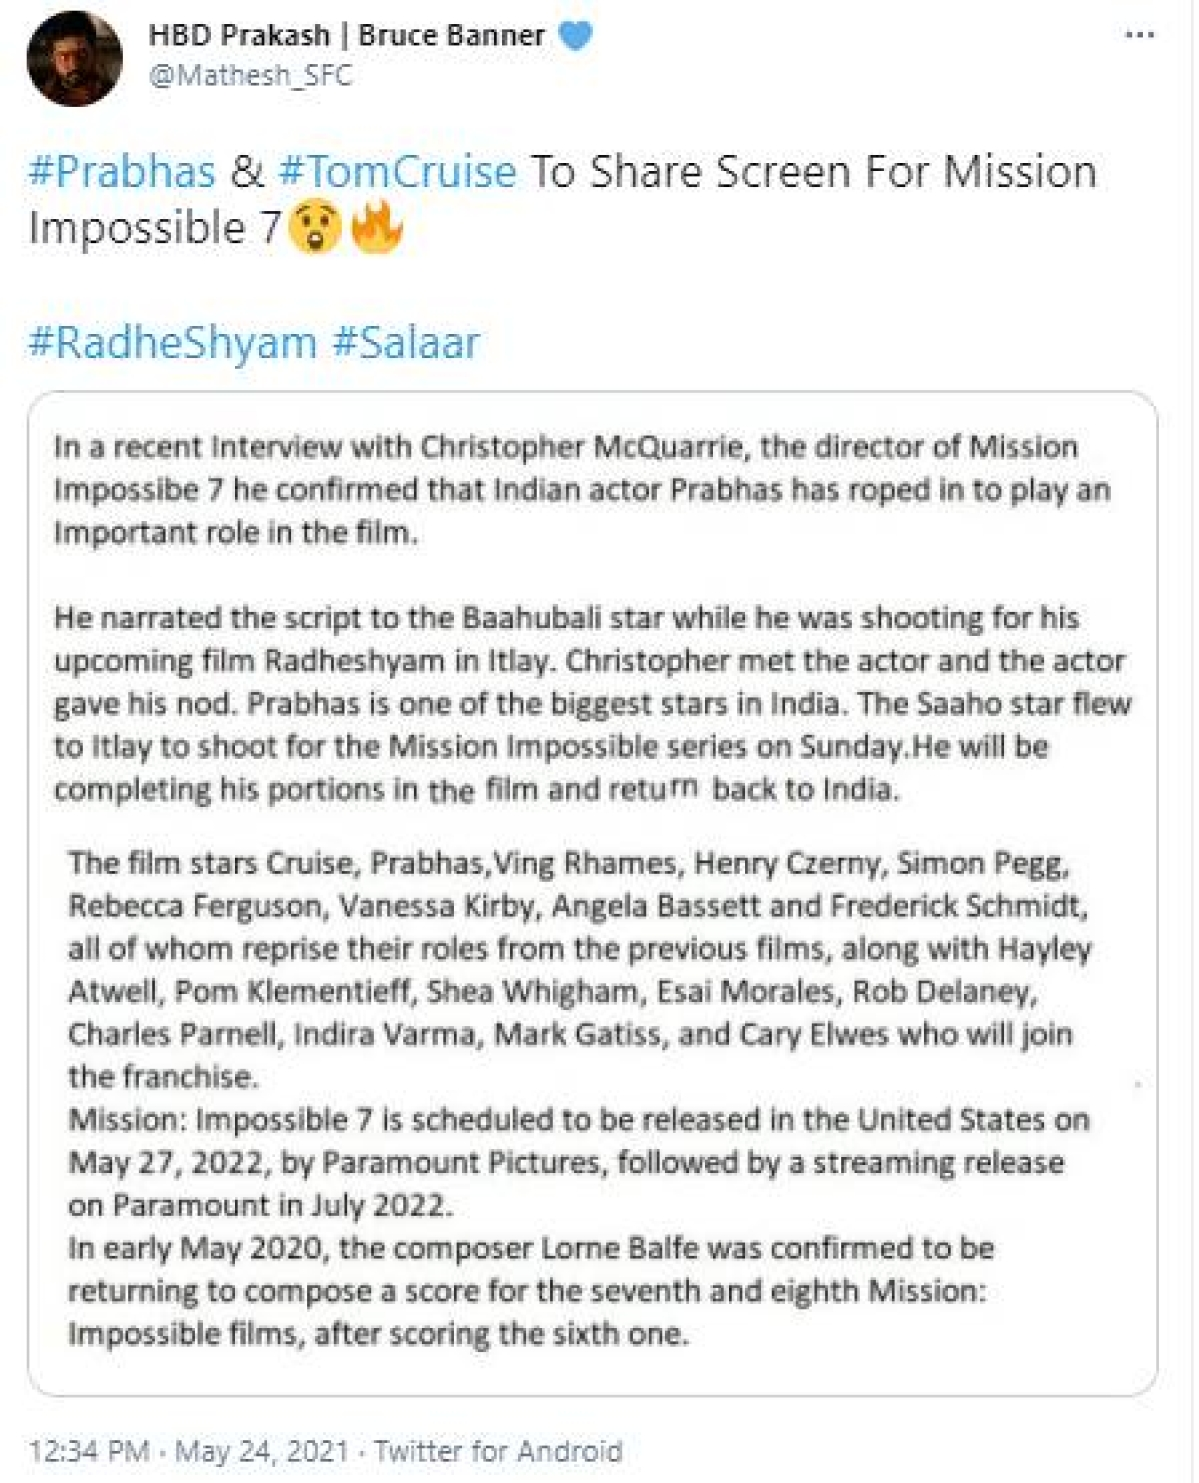 Prabhas to play an 'important role' in Tom Cruise's 'Mission Impossible 7'?